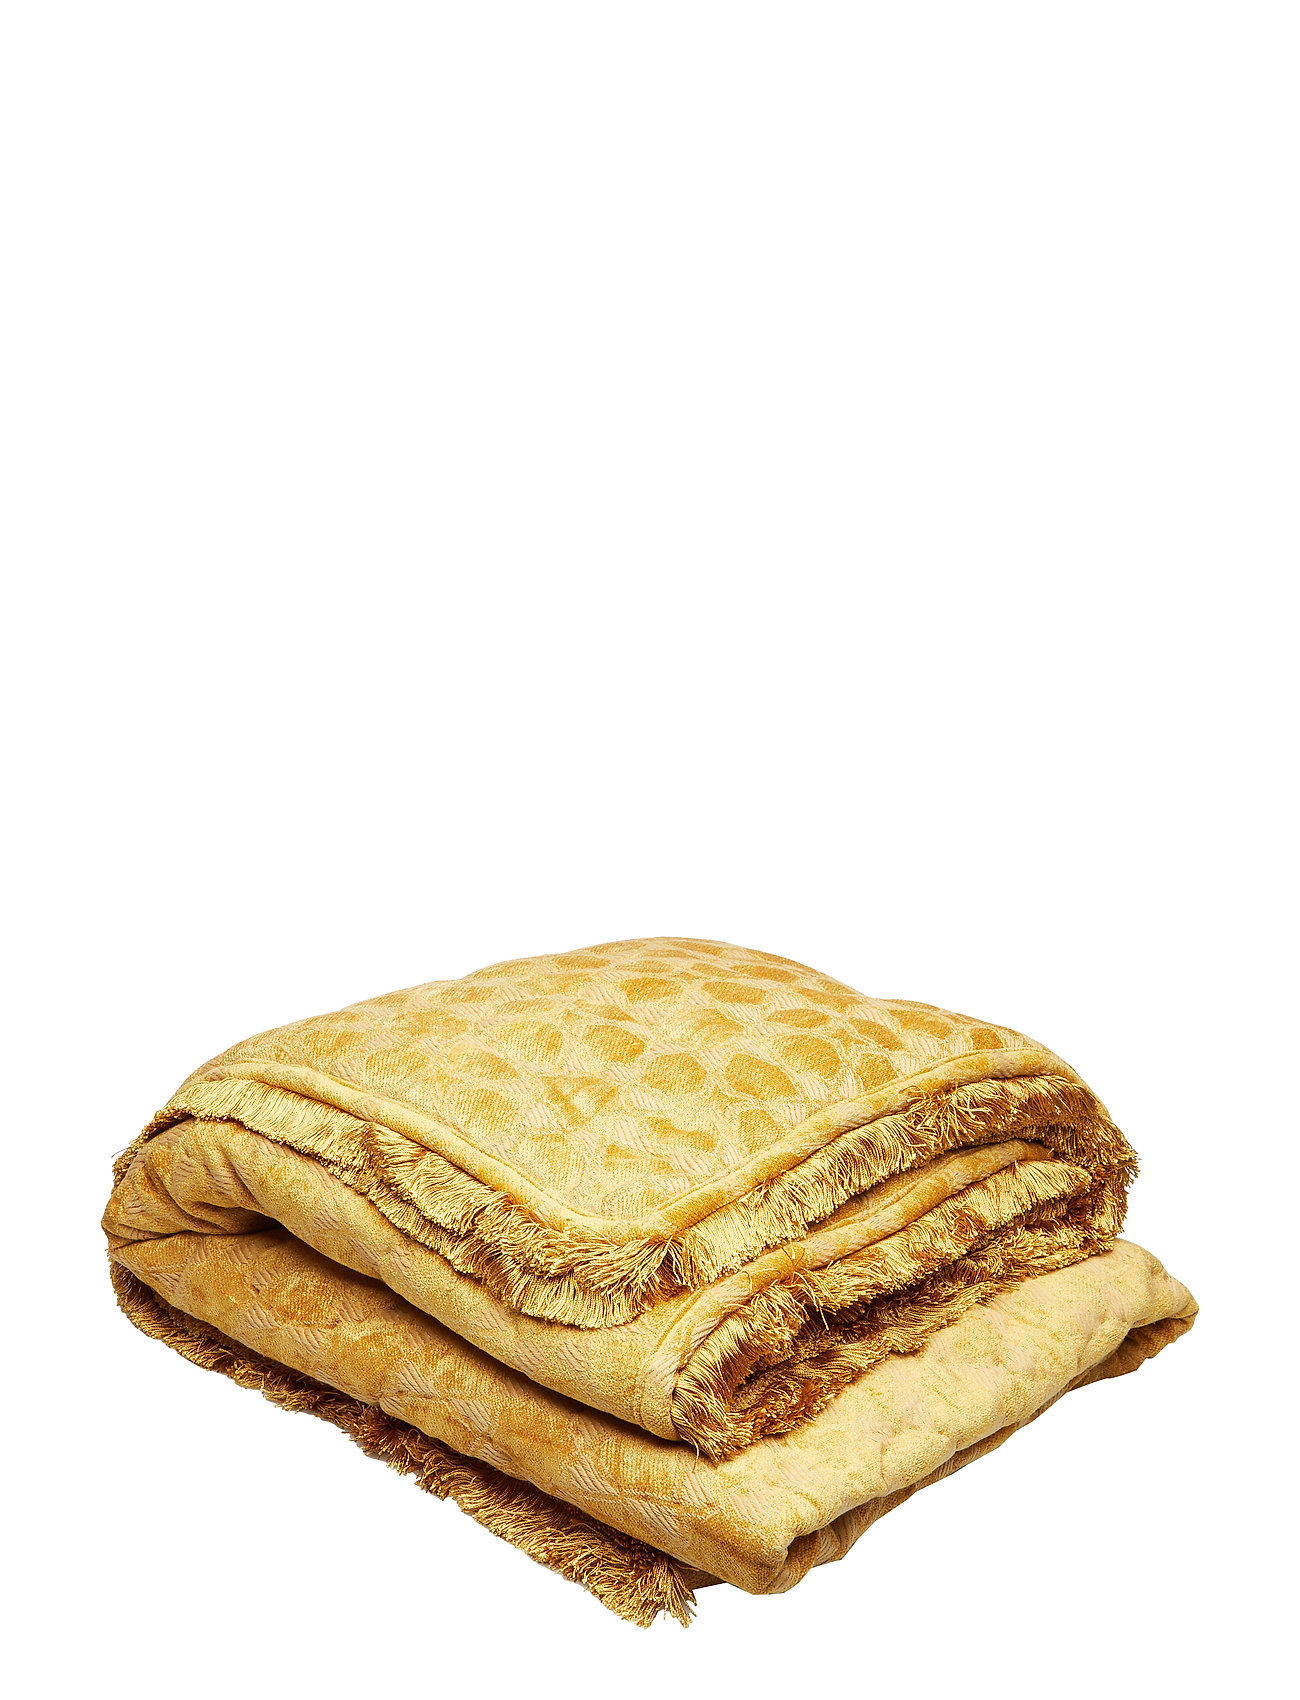 DAY Home Day Mahal Gold Blanket with Fringes - GOLD